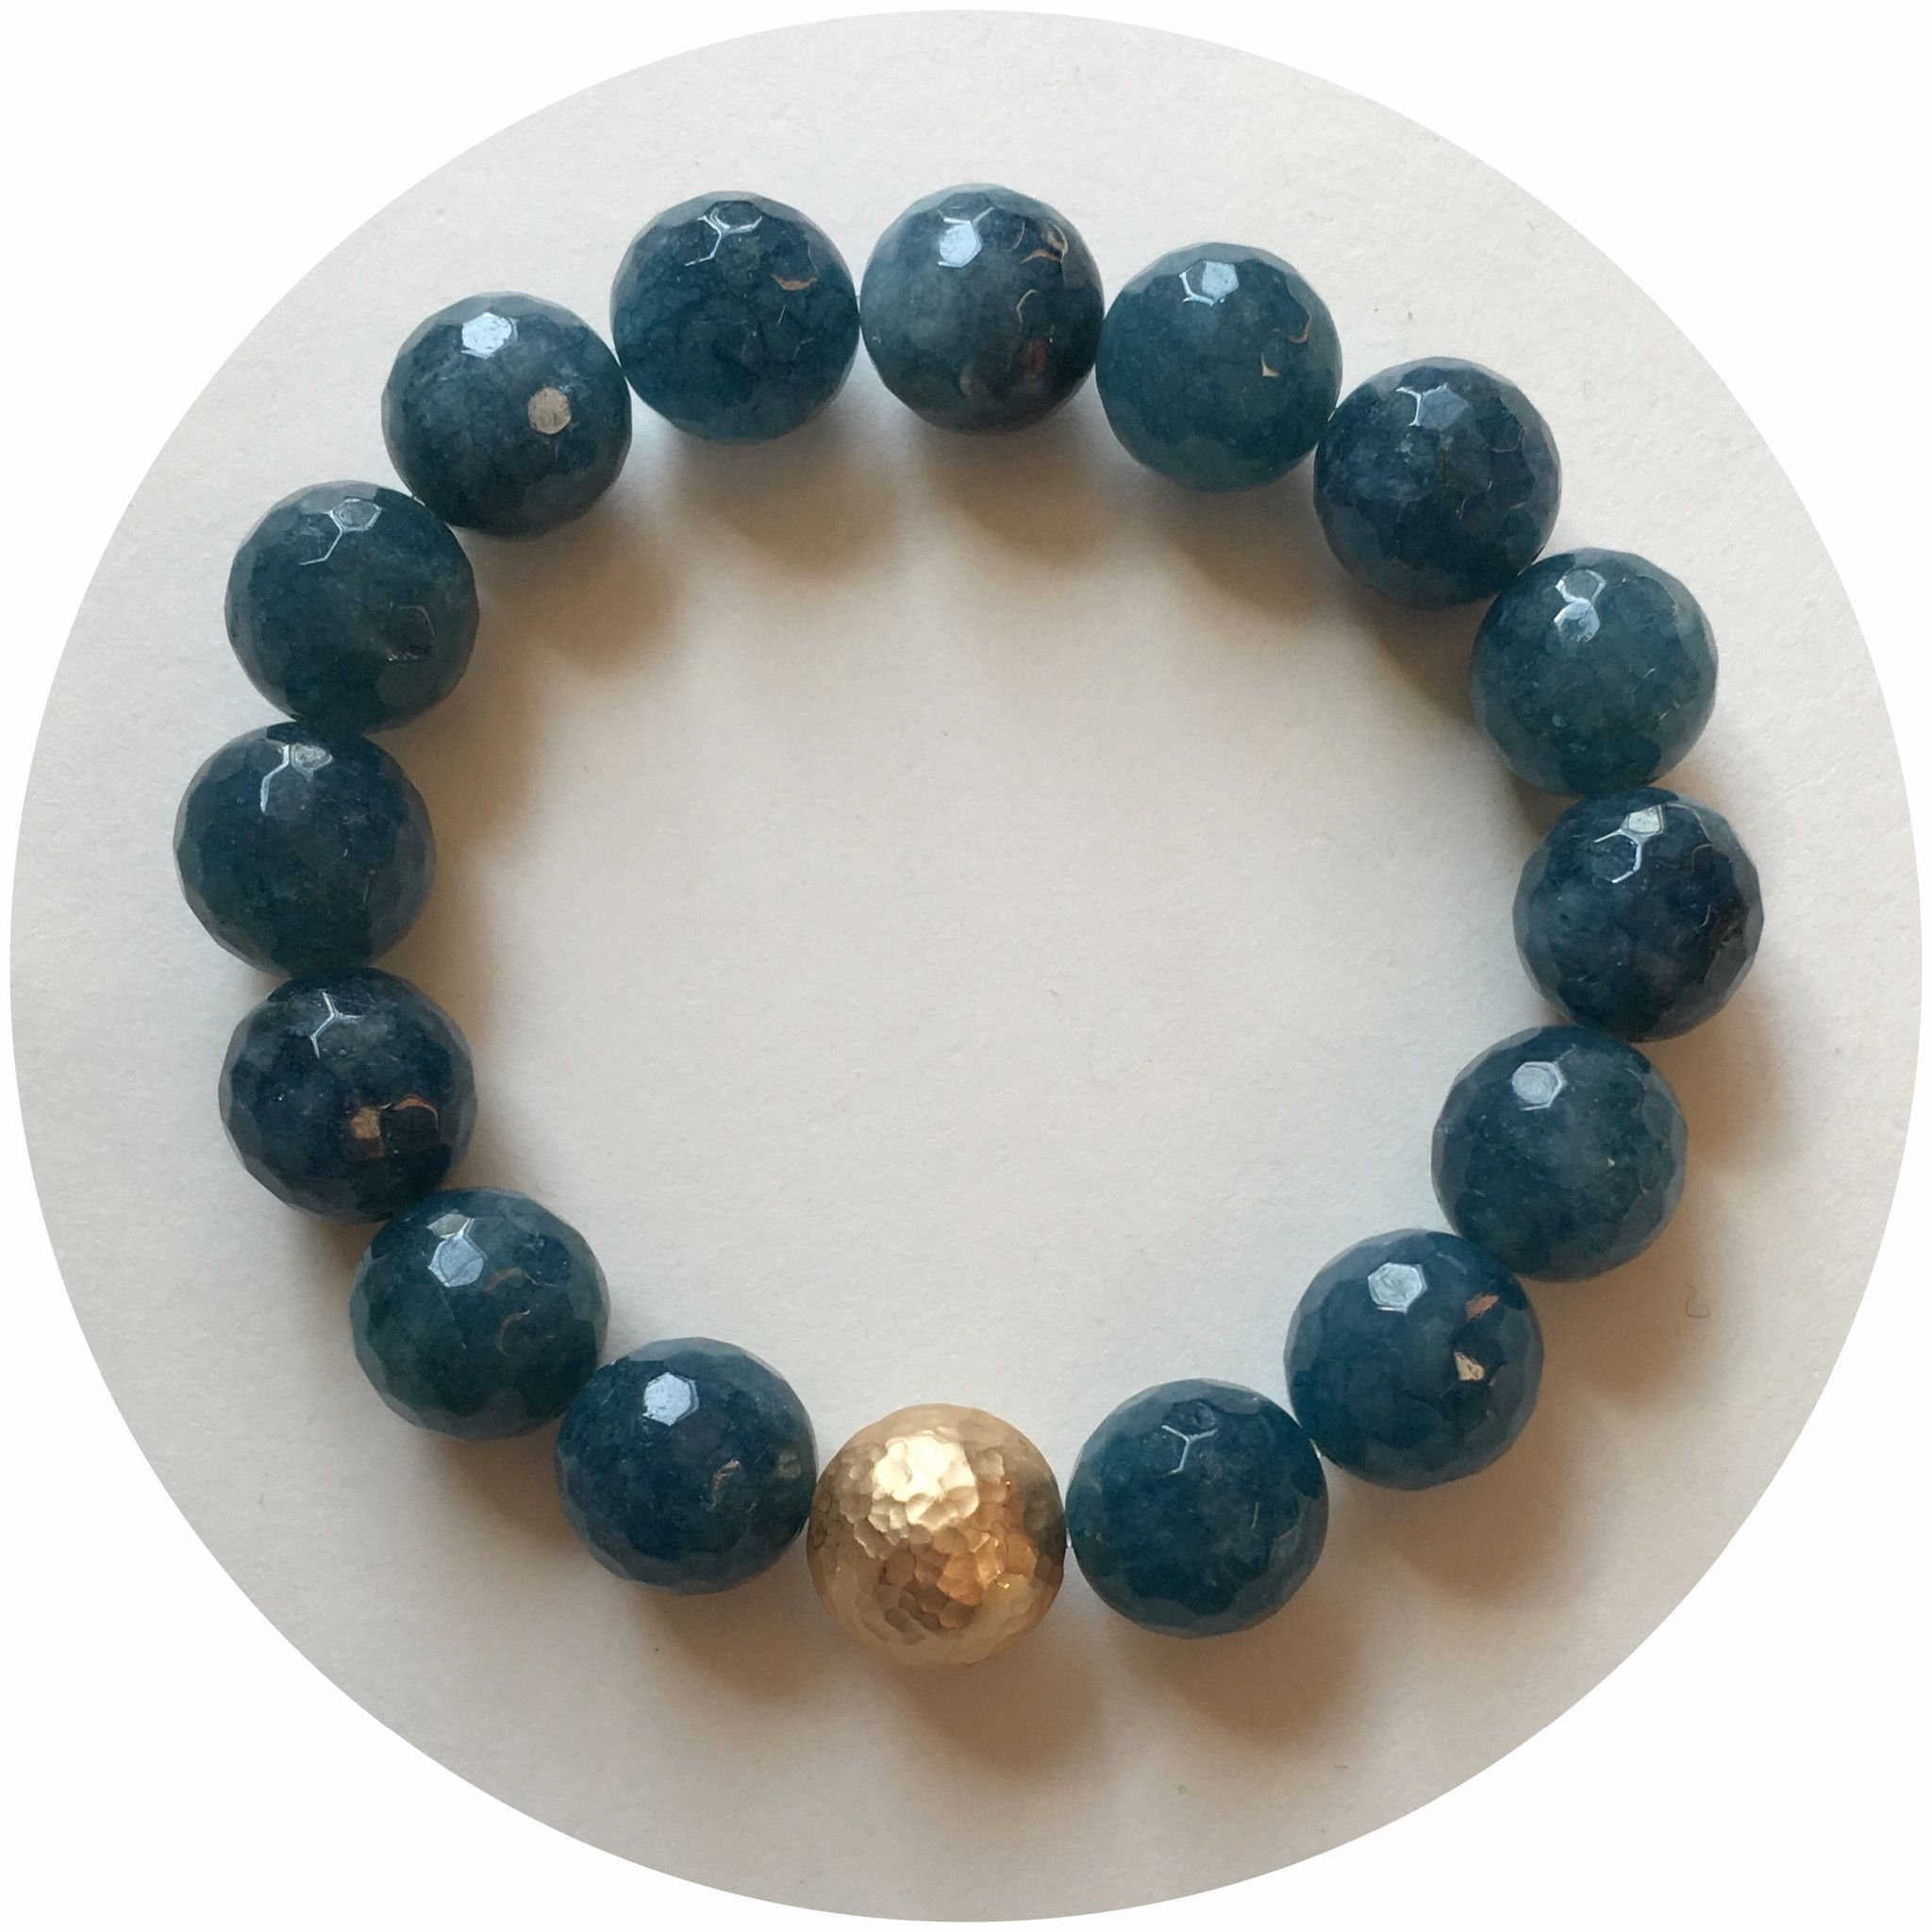 Teal Jade with Gold Hammered Accent